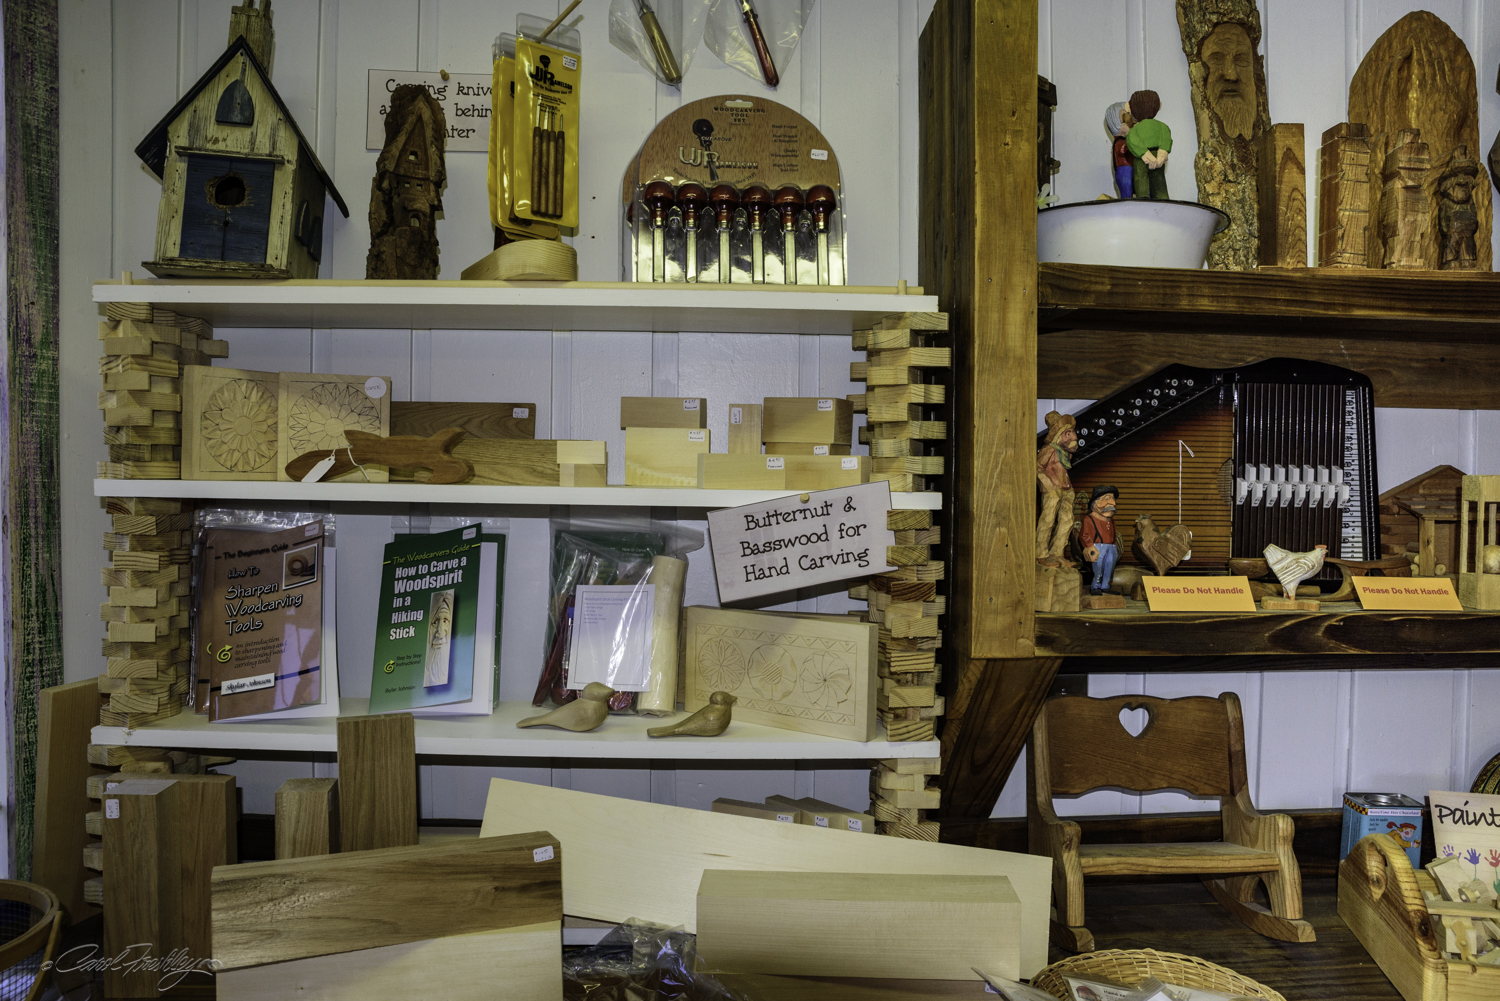 A woodworking shop.